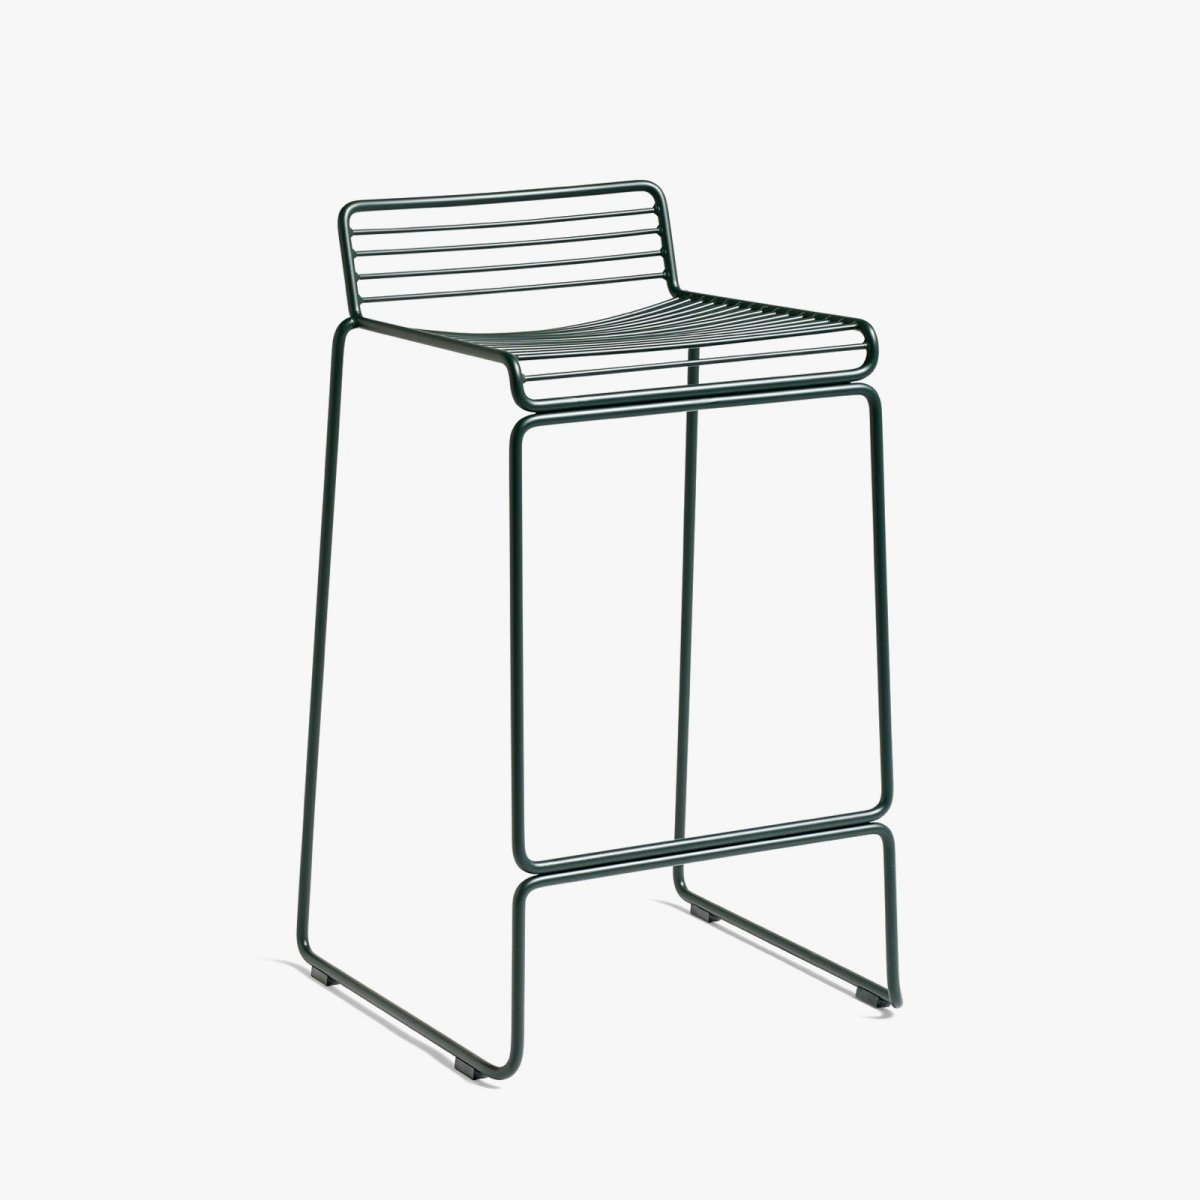 Hee Bar Stool, high, racing green.